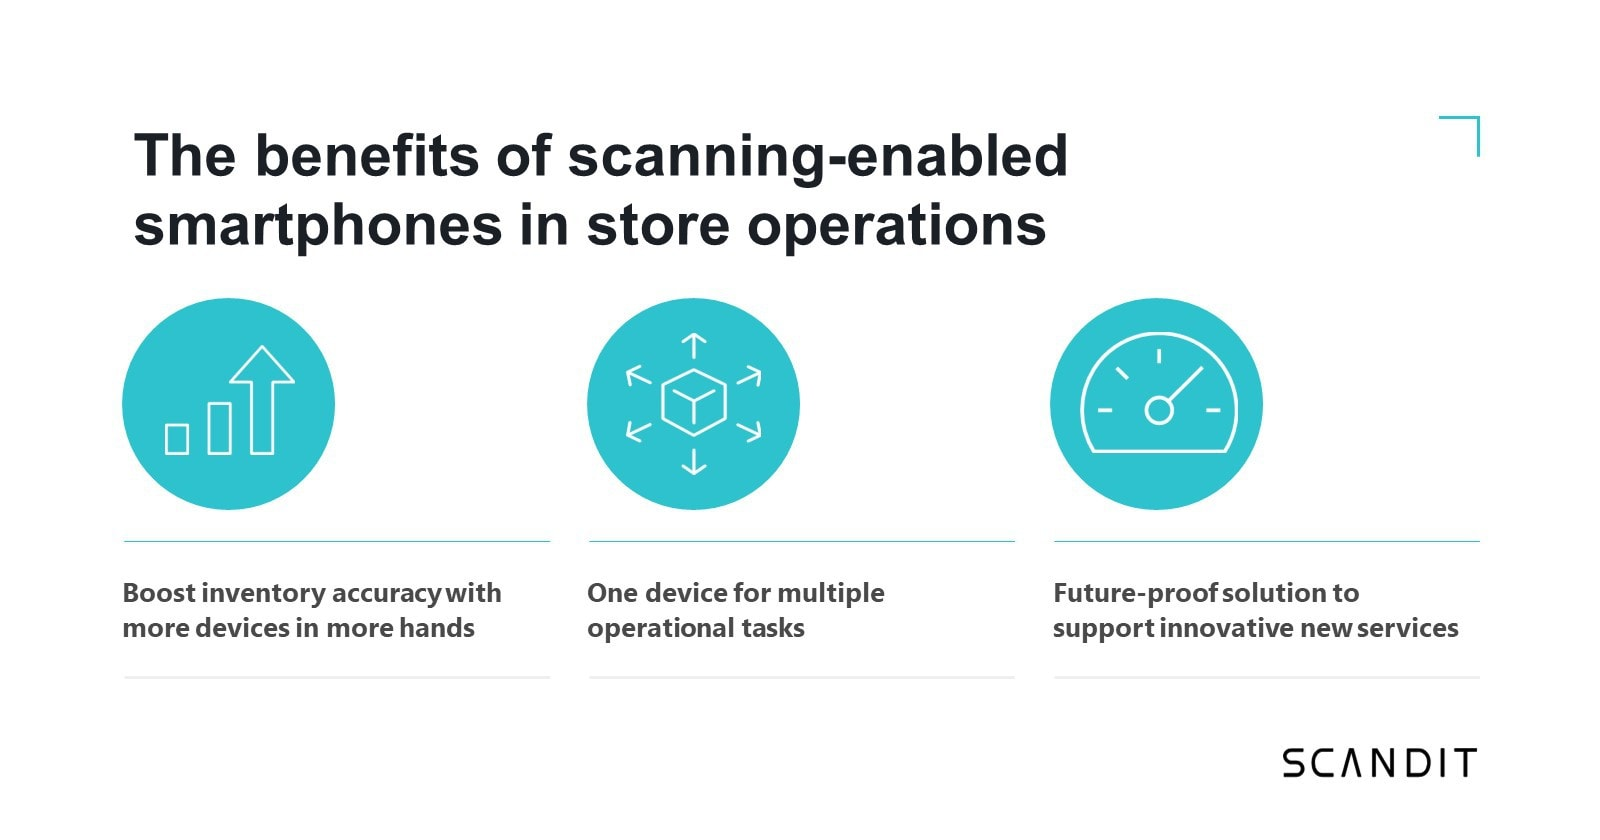 The benefits of scanning-enabled smartphones in store operations